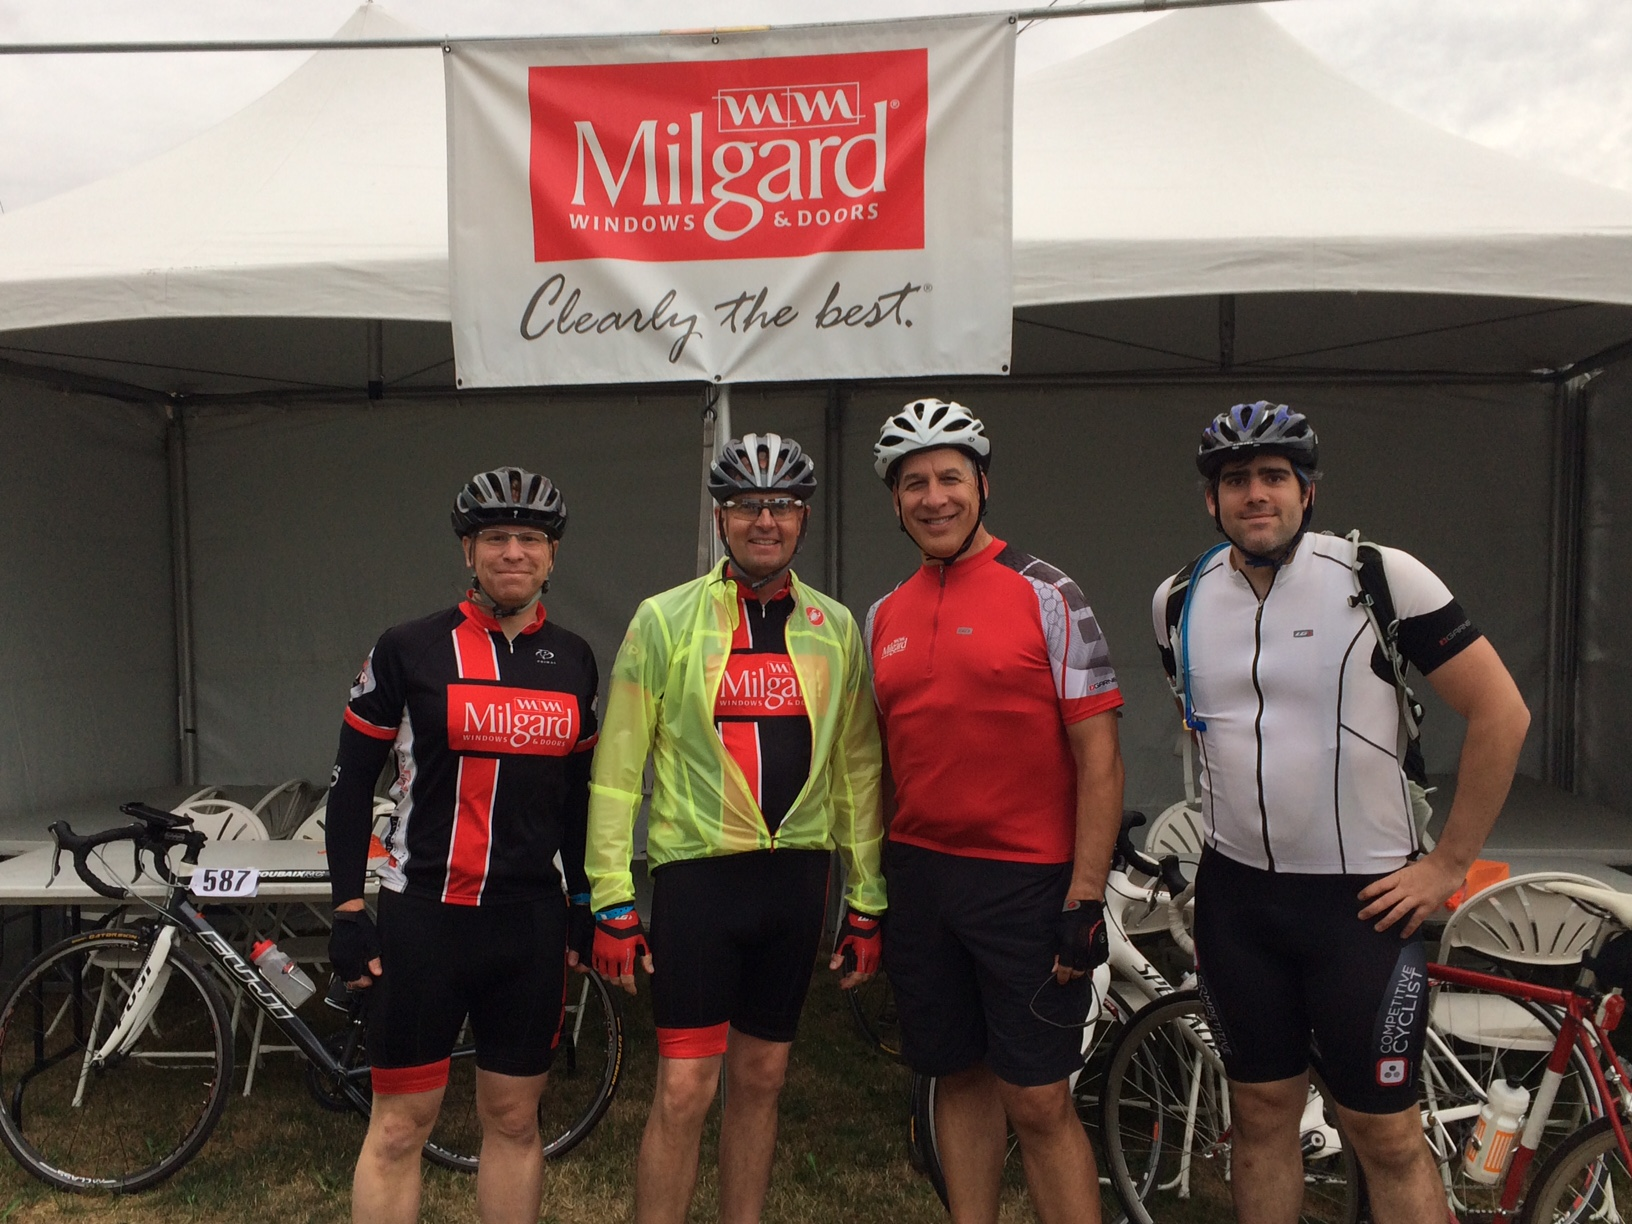 Milgard Bike MS Rider Team